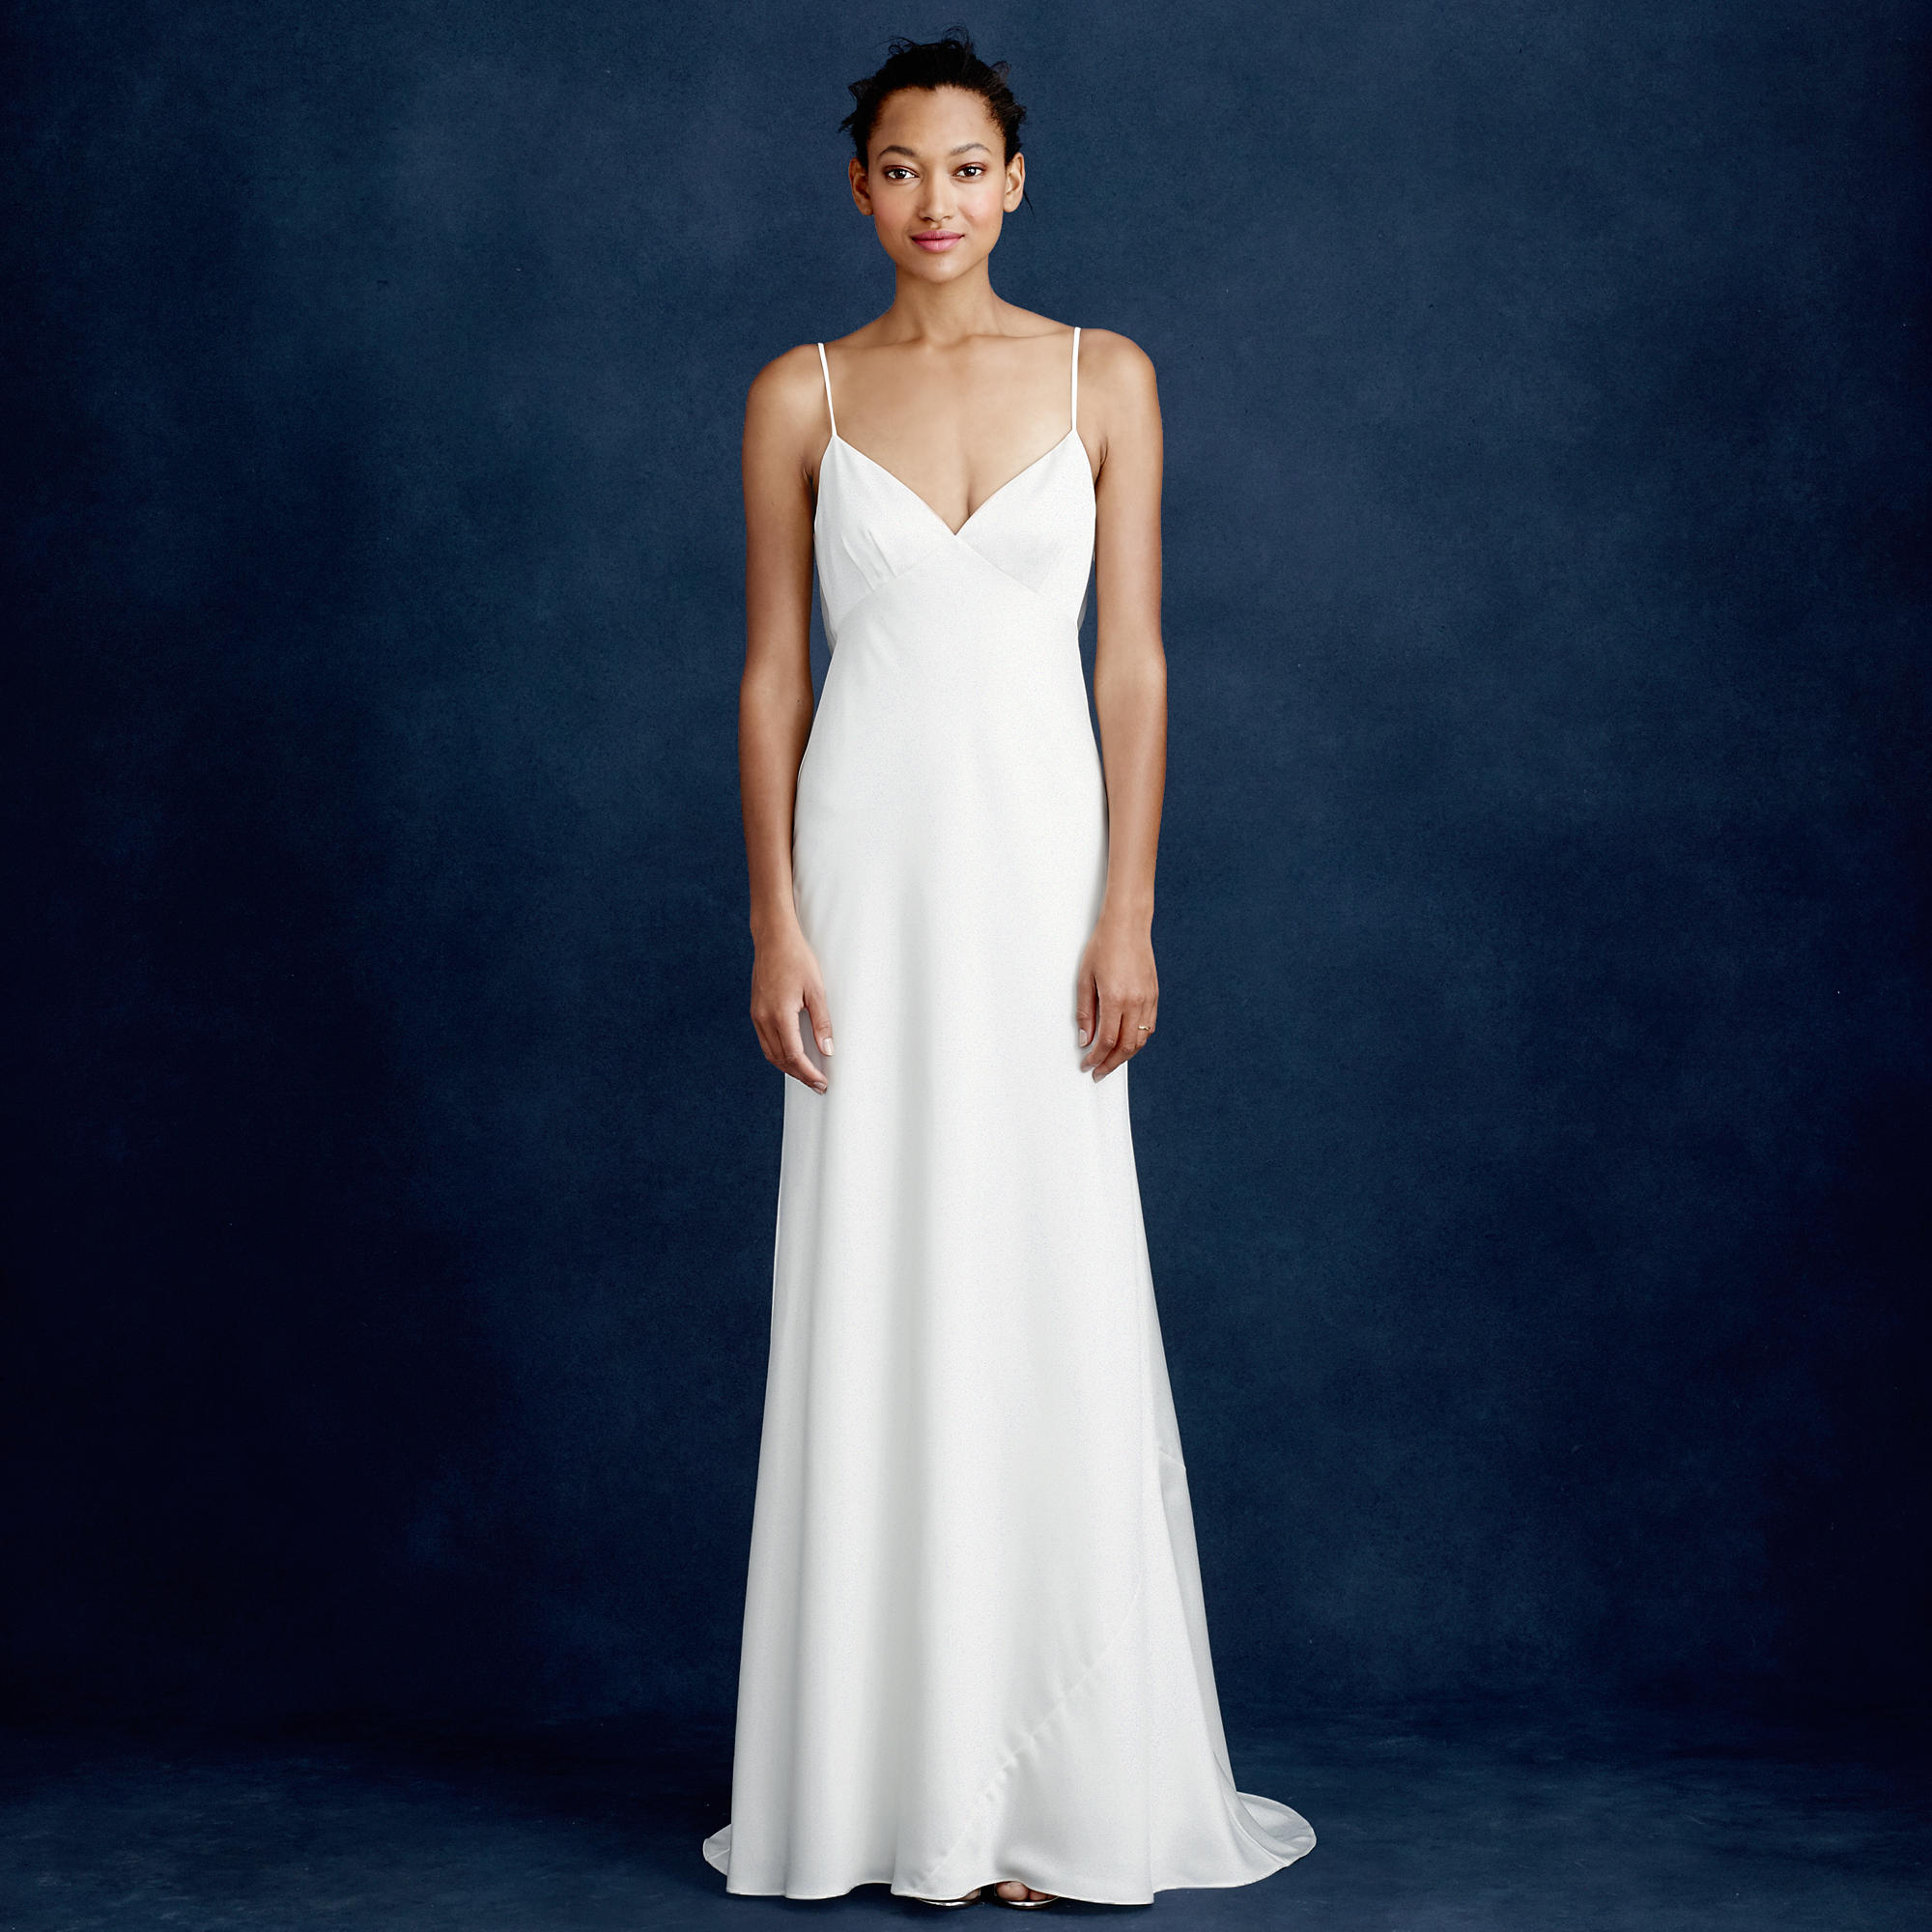 White Wedding Dress Under 500: Smokin' Hot Wedding Dresses Under $500